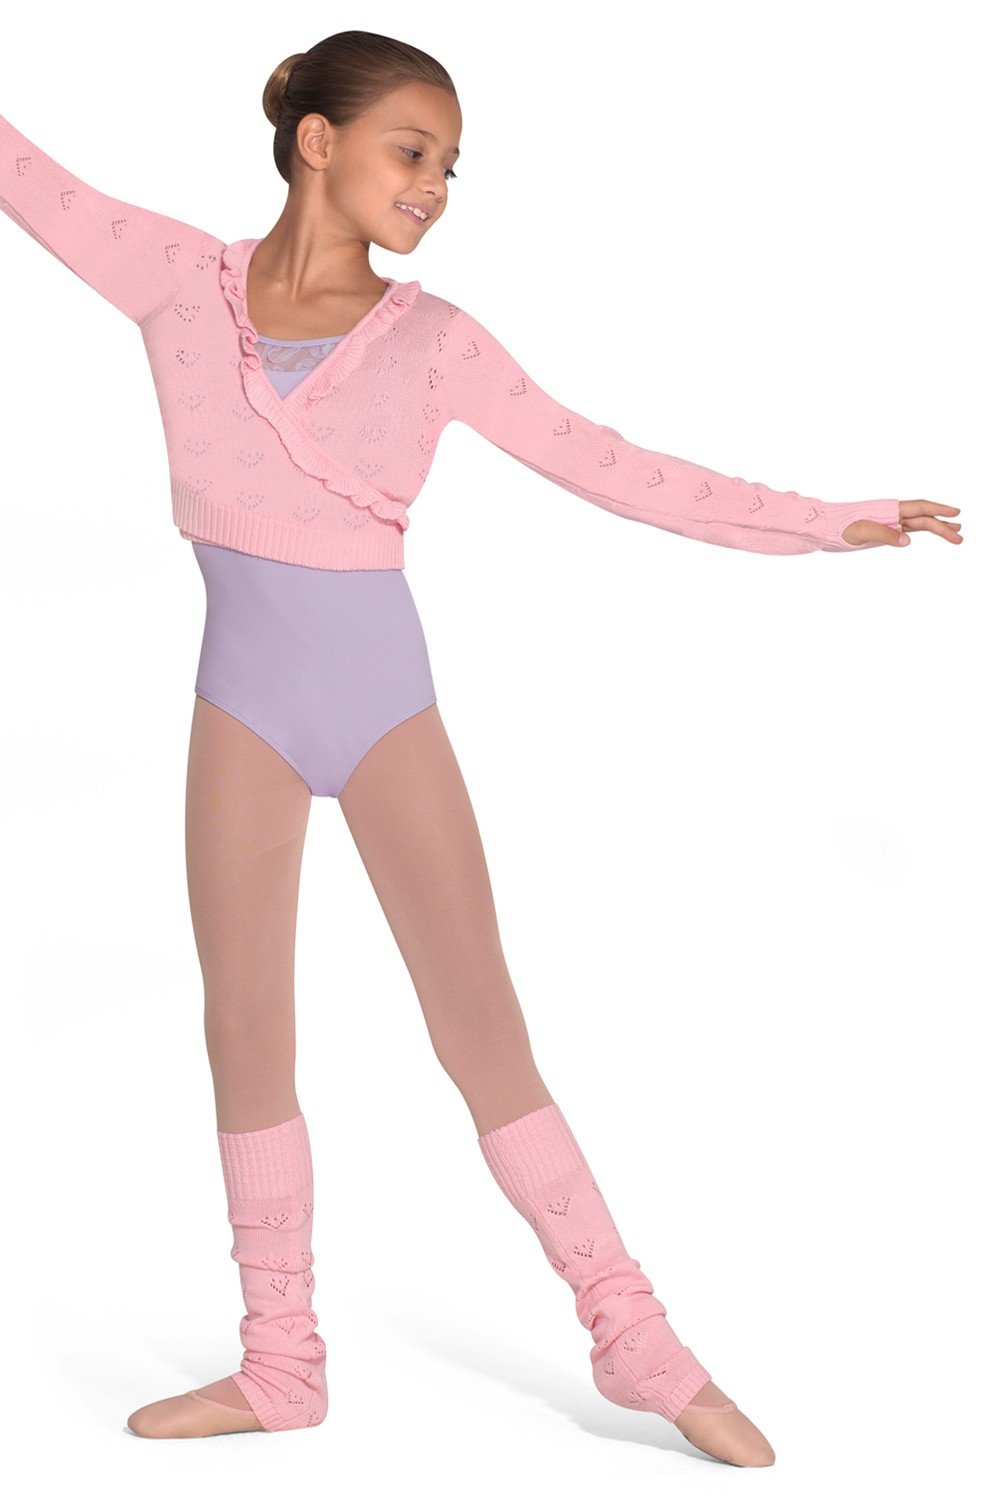 Allura Girls Pointelle Heart Knit Long Sleeve Wrap Children's Dance Tops